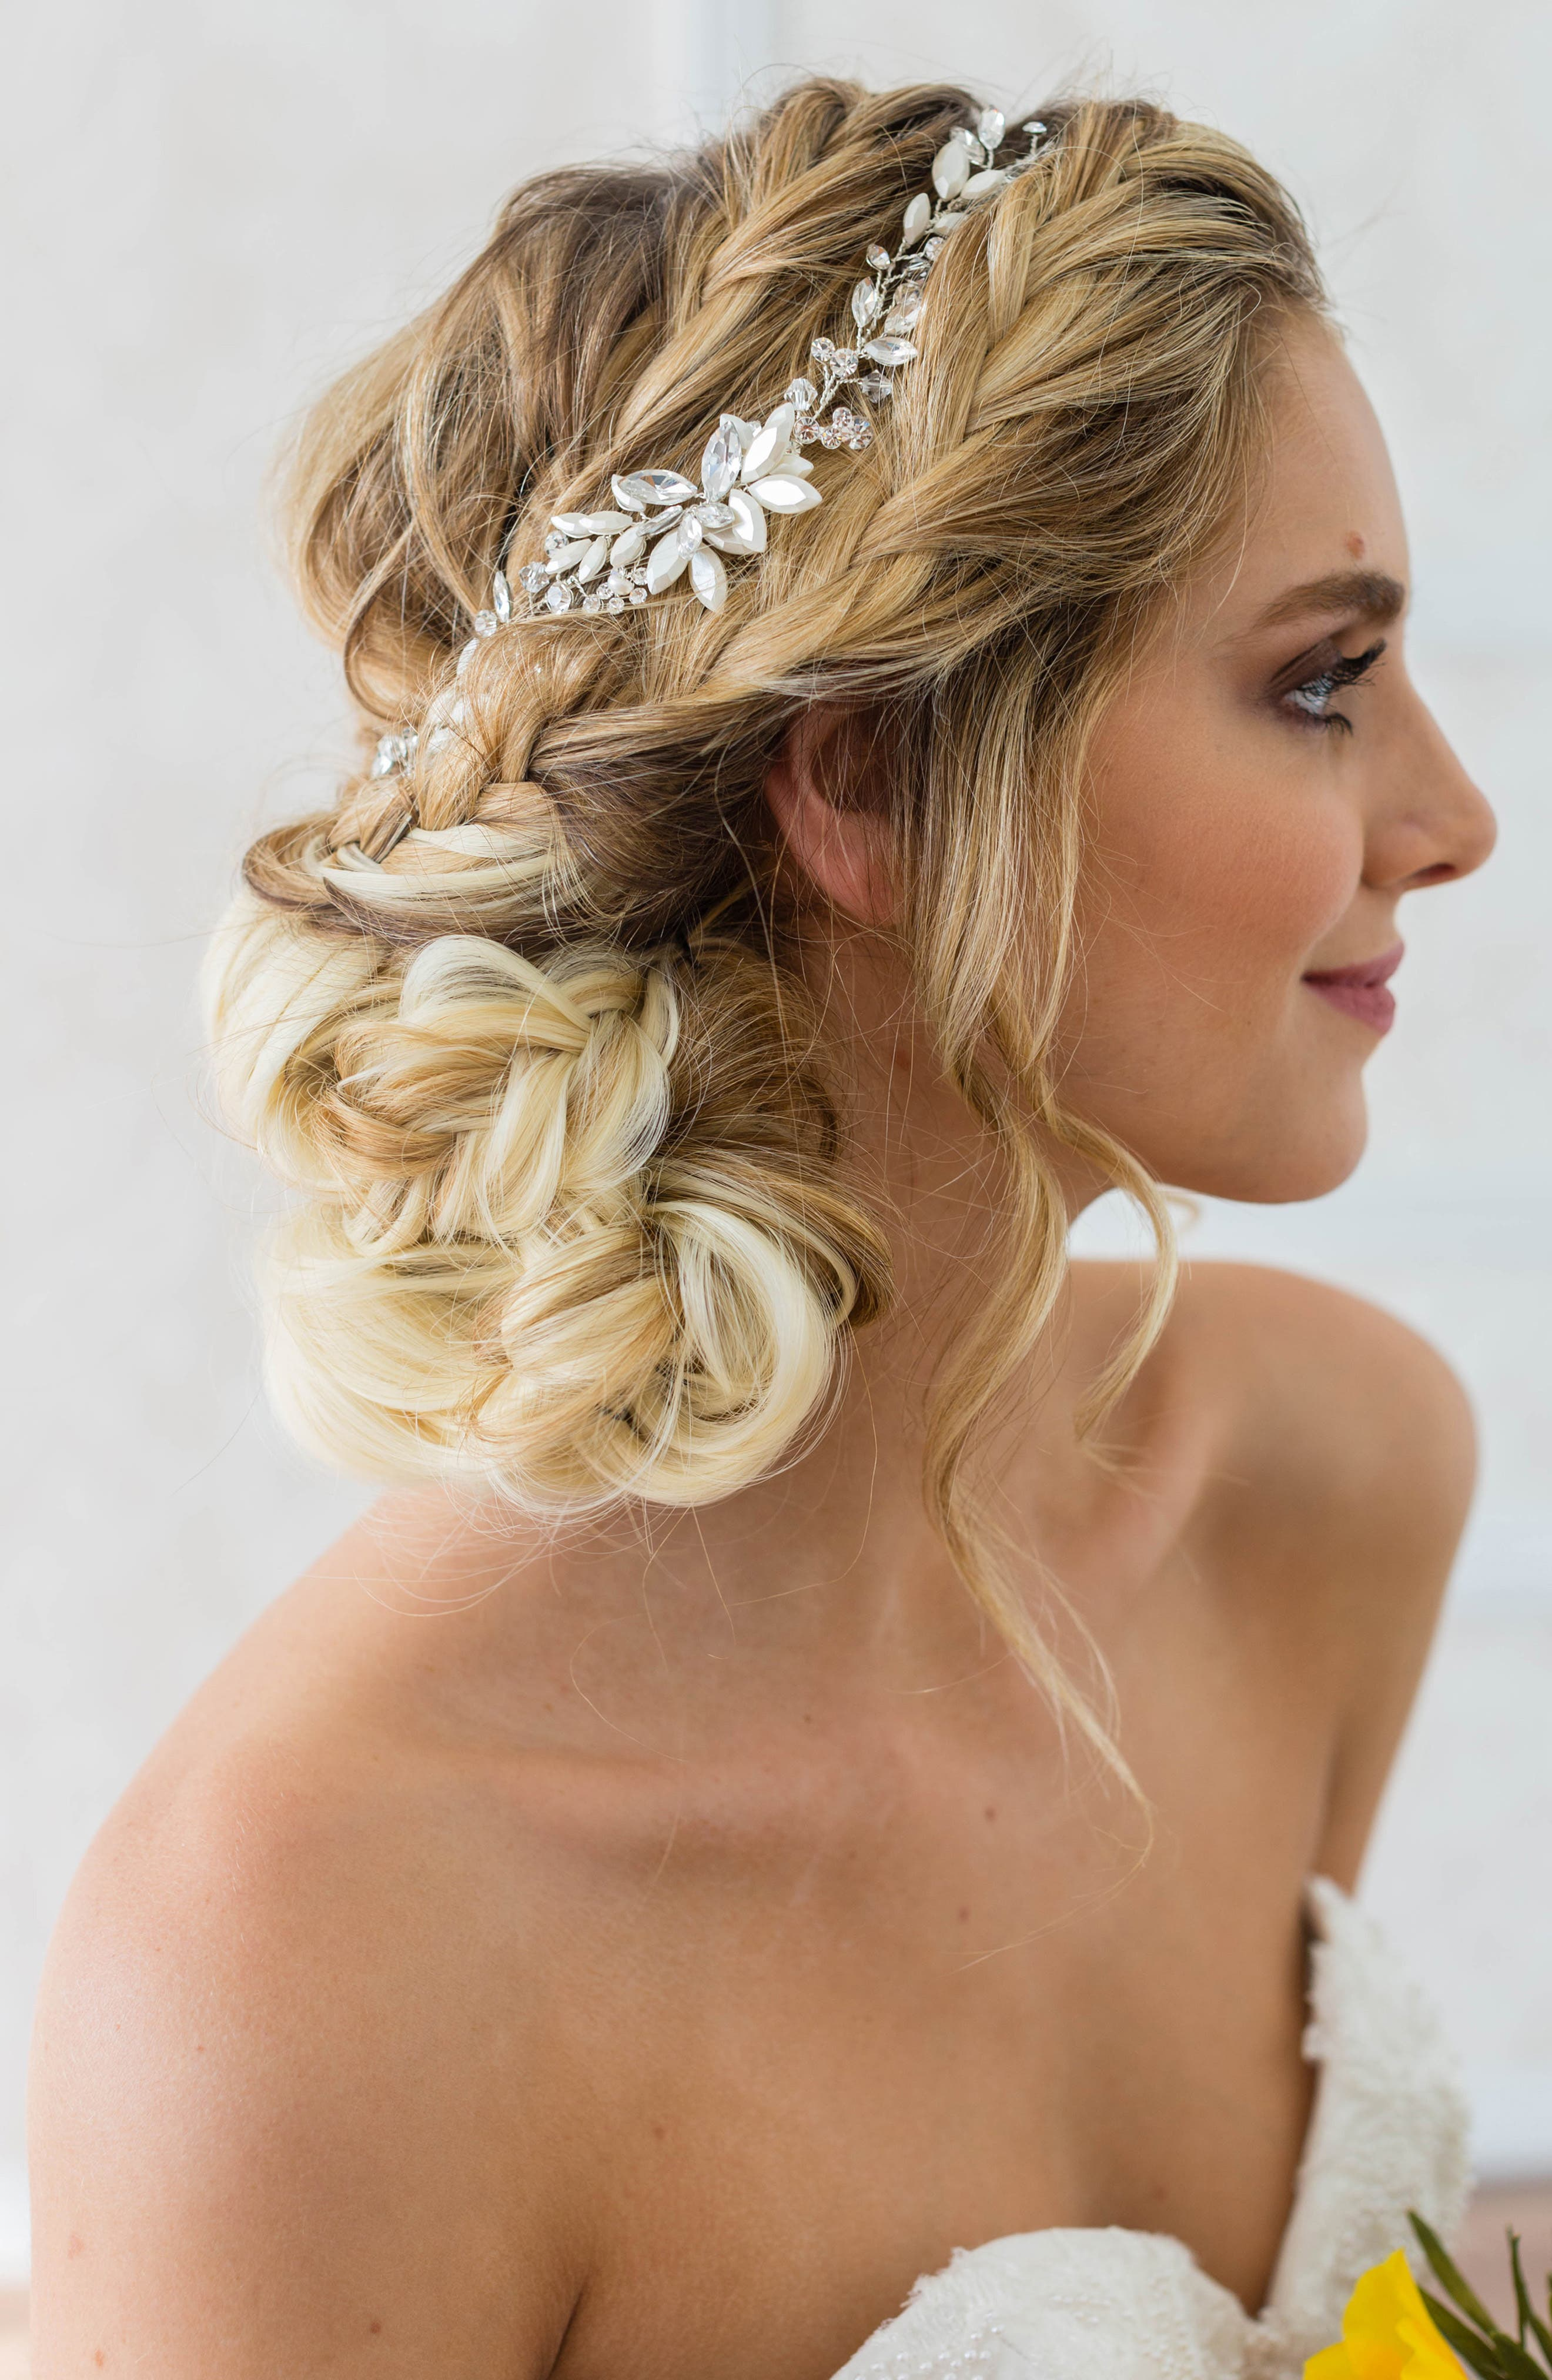 792a617408 Hair Accessories for Women | Nordstrom